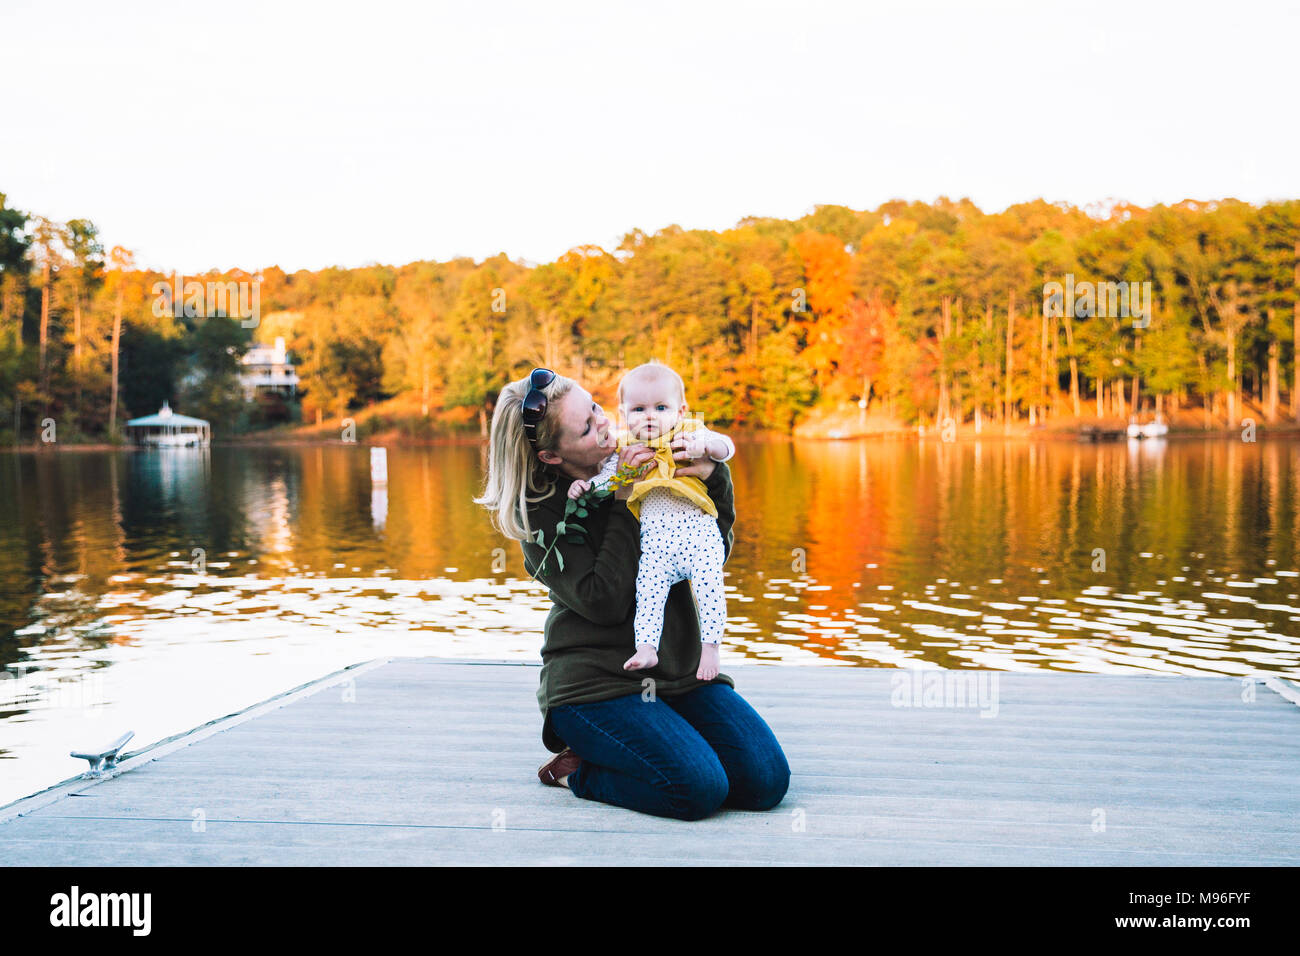 Woman holding baby on dockside - Stock Image